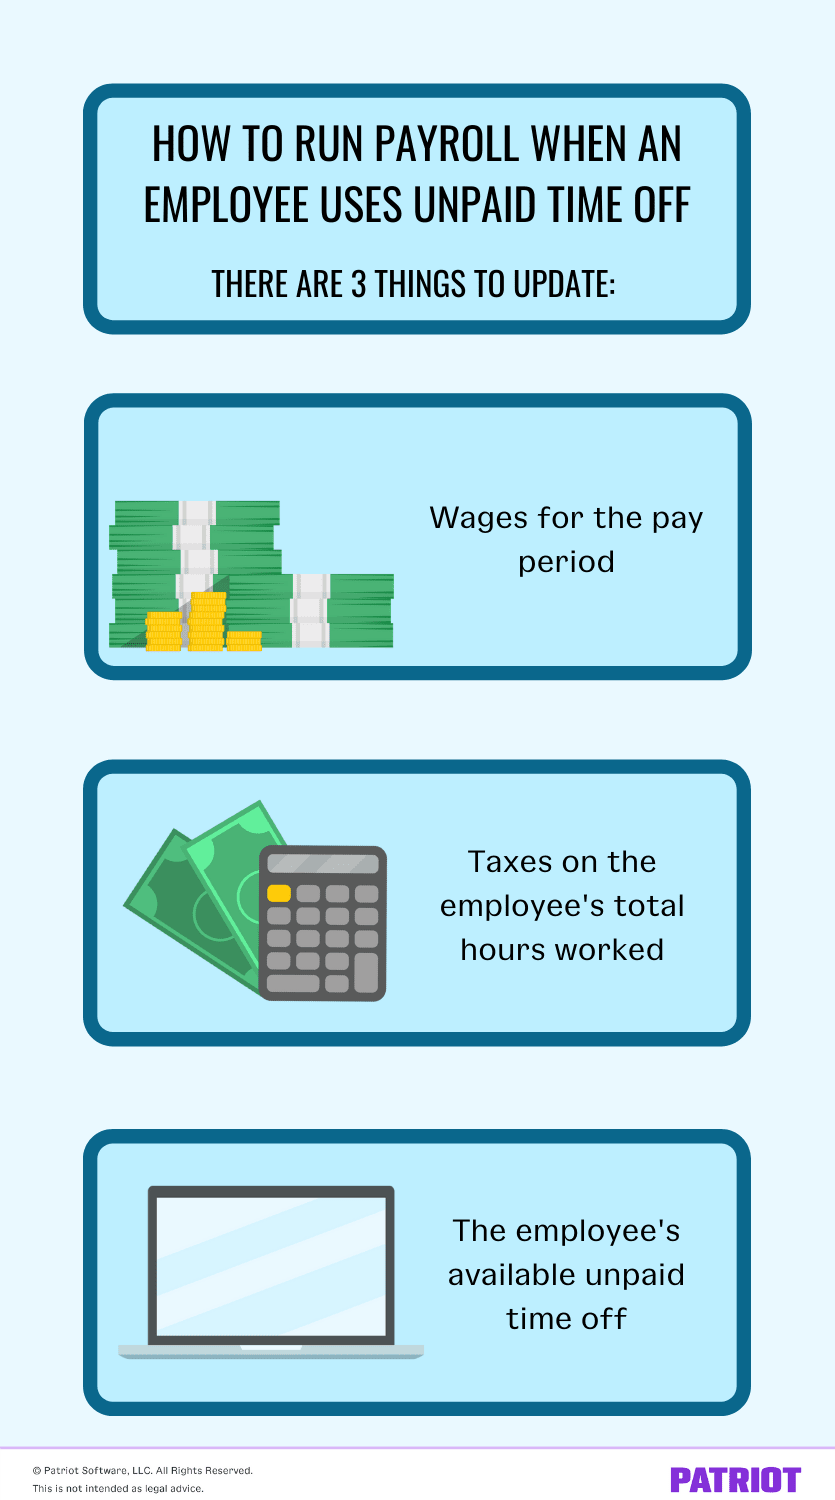 running payroll when an employee uses unpaid time off: update these 3 things 1) wages for the pay period 2) taxes on the employee's total hours worked 3) The employee's available unpaid time off